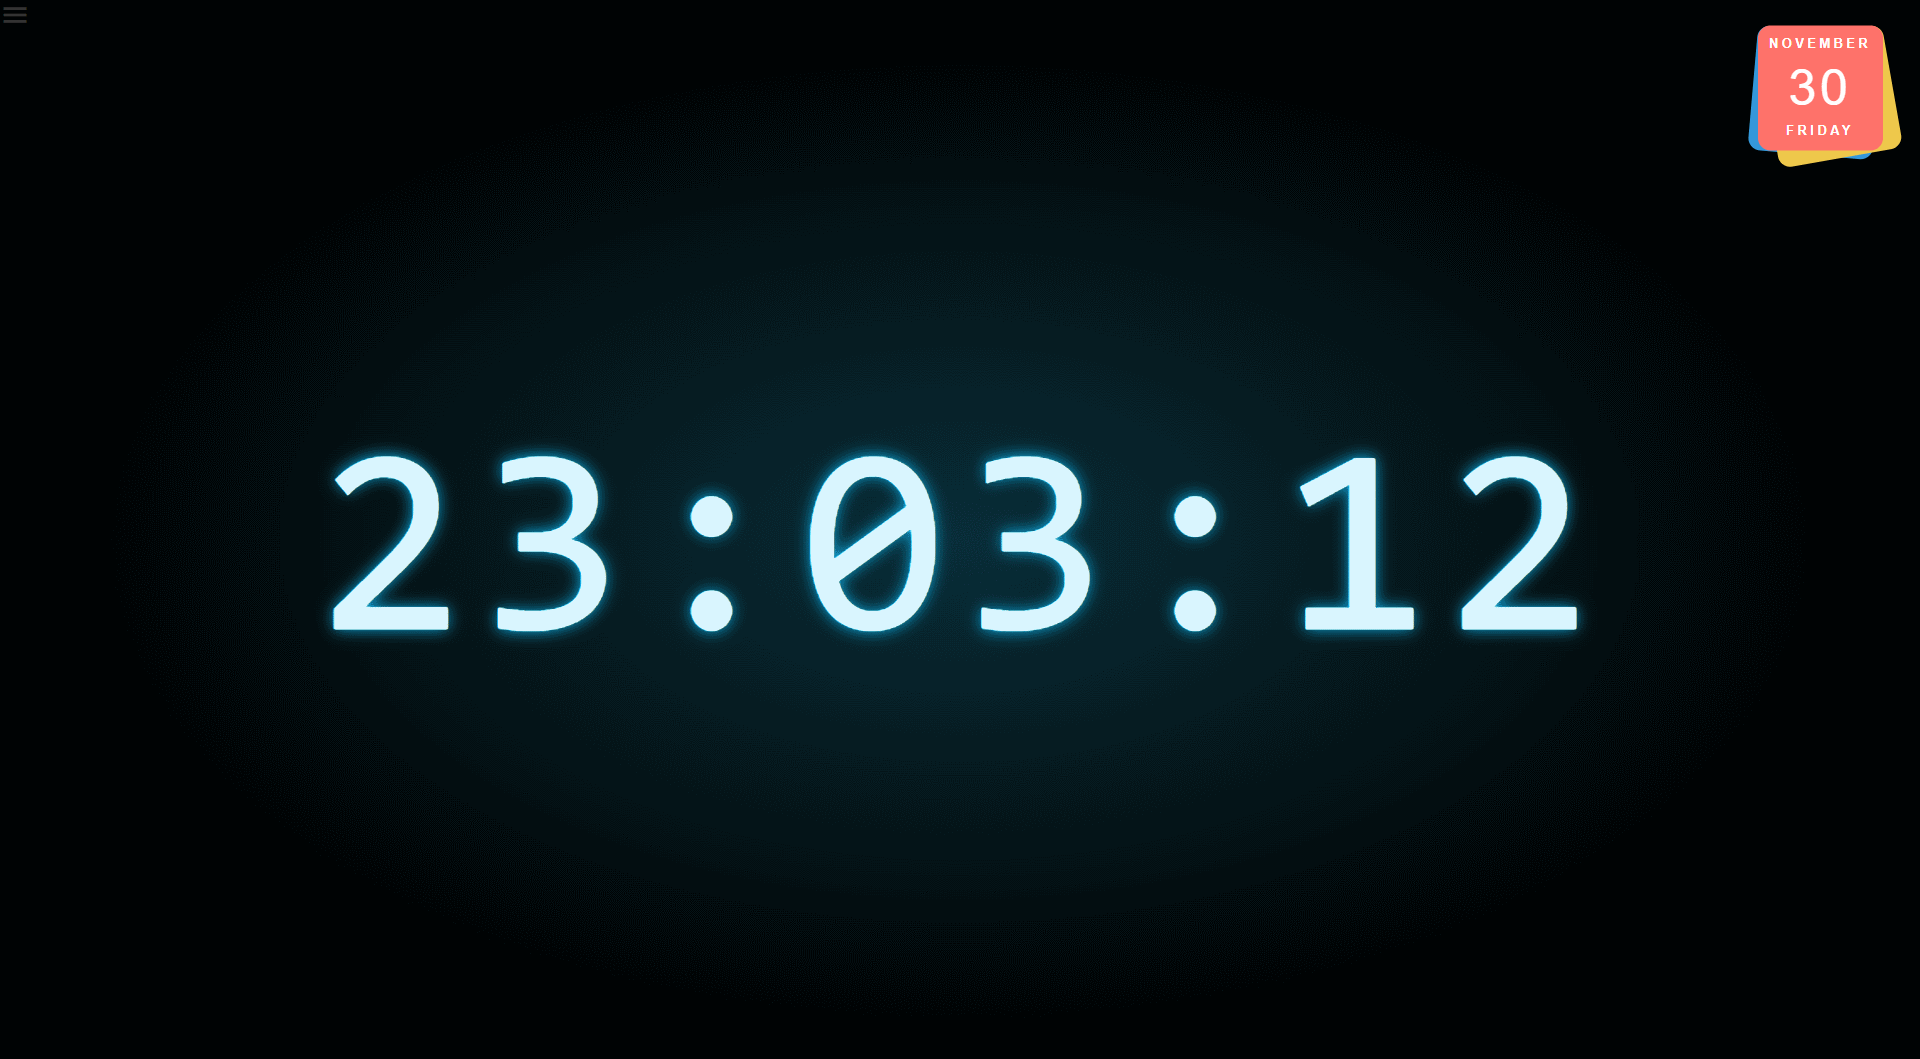 Screenshot of the GUI using a digital clock